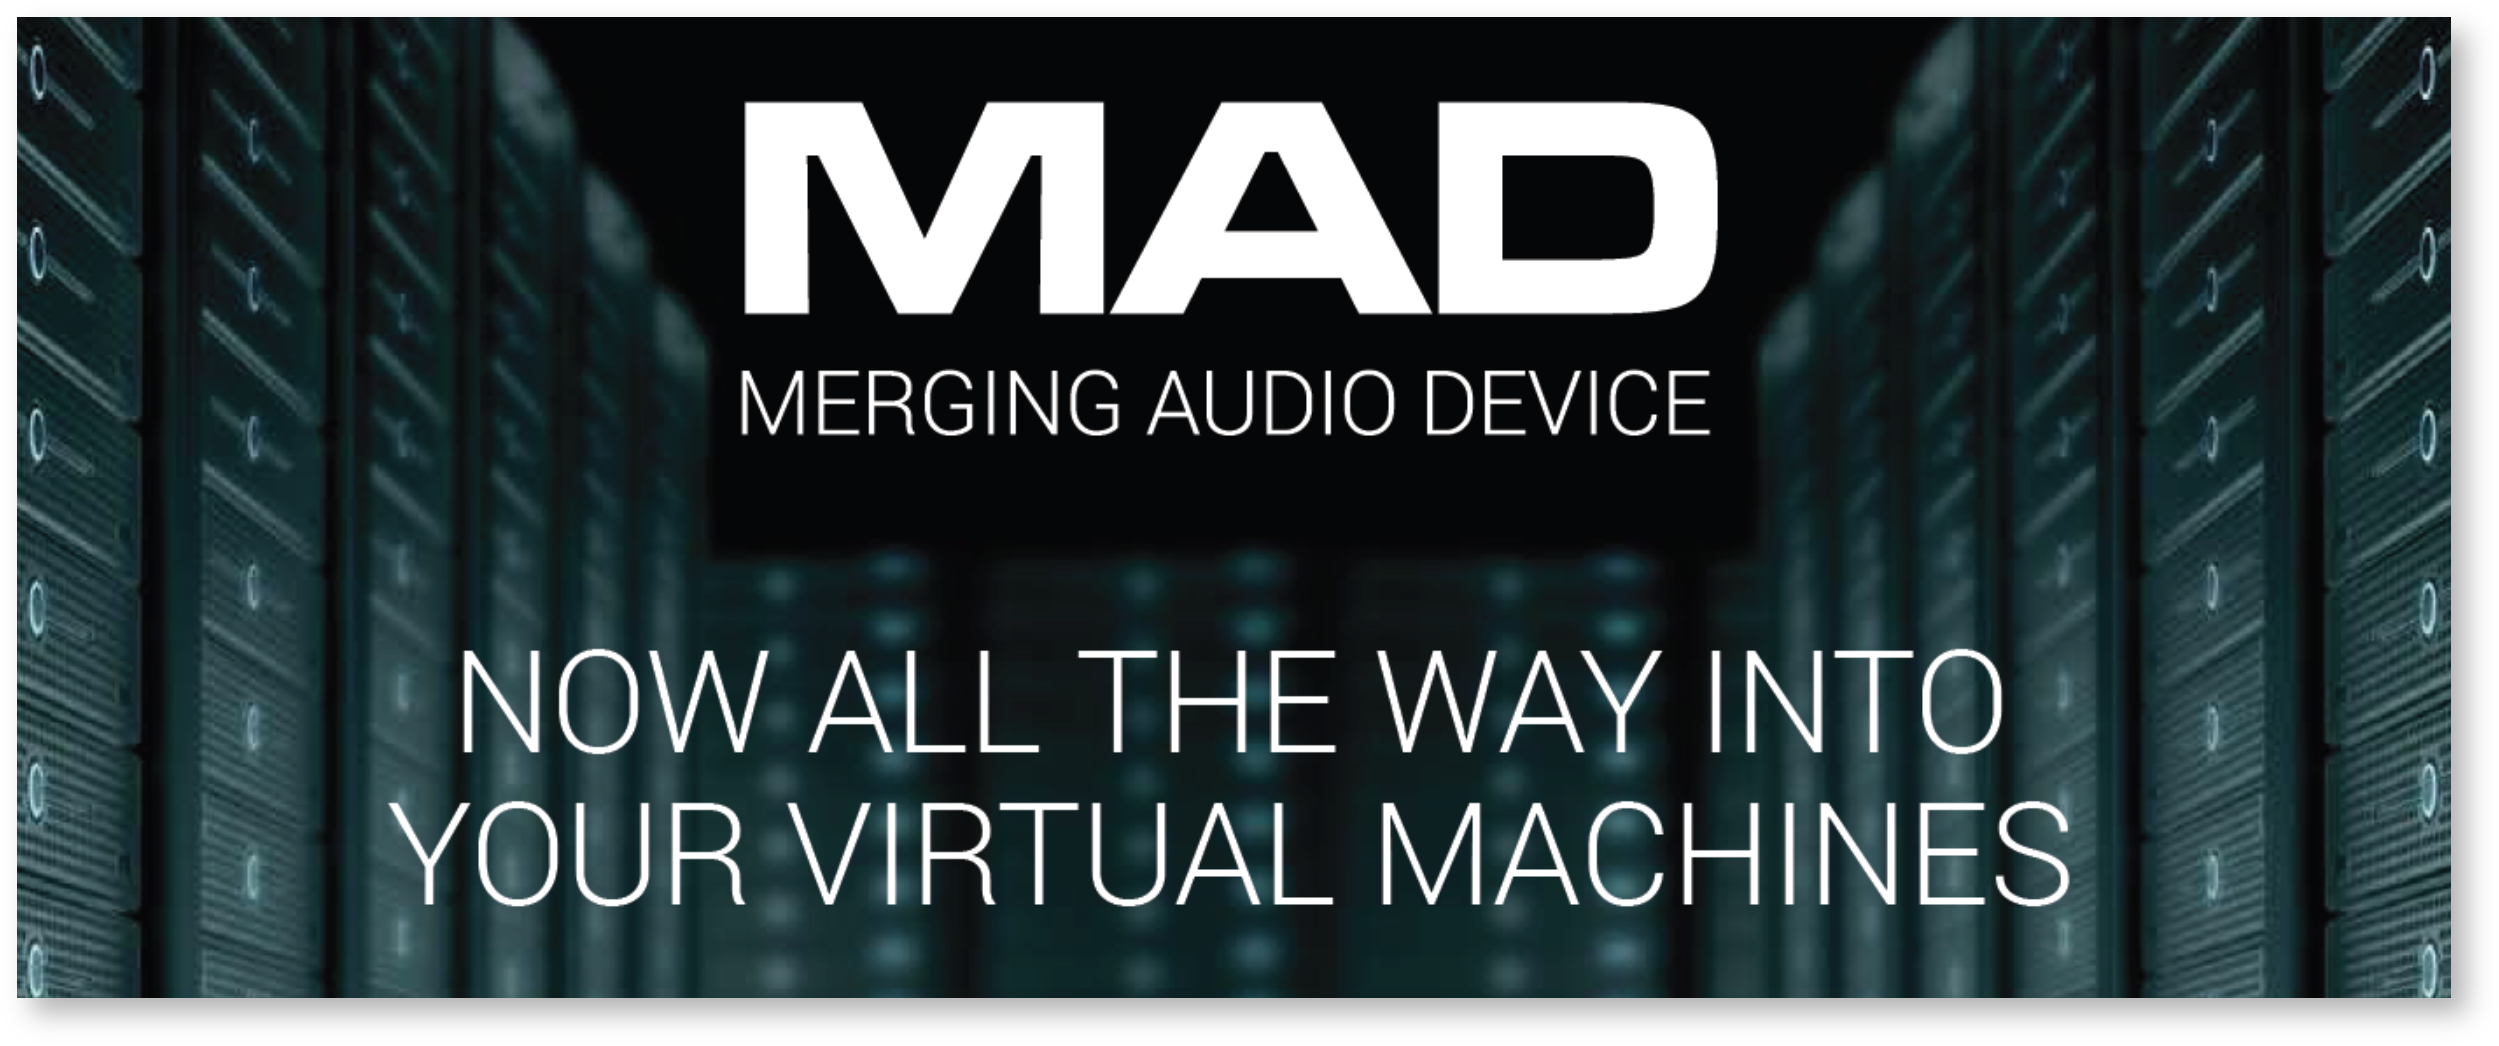 MAD - Merging Audio Device